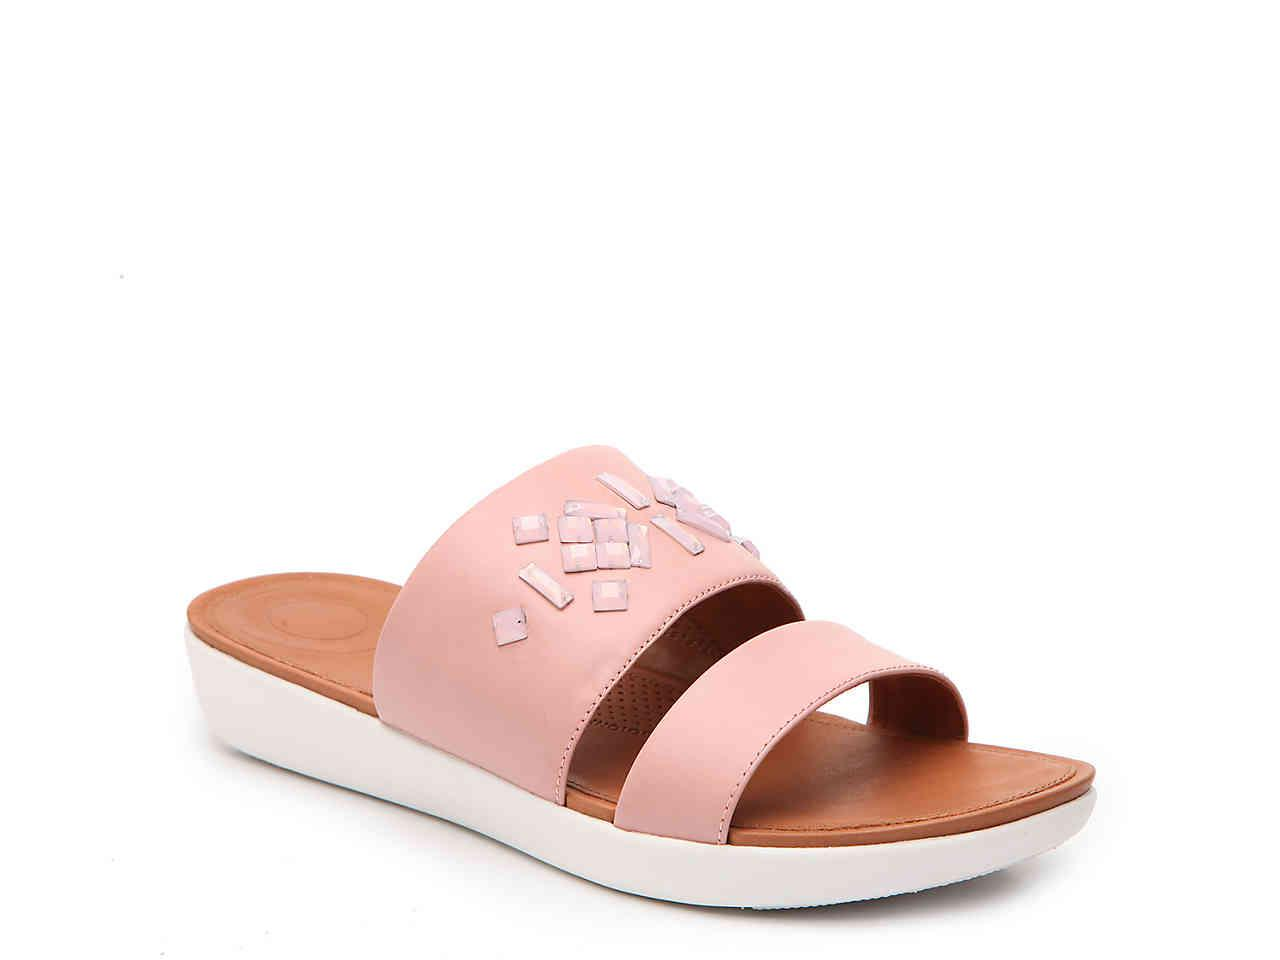 5038c60774b Lyst - Fitflop Delta Wedge Sandal in Pink - Save 70%